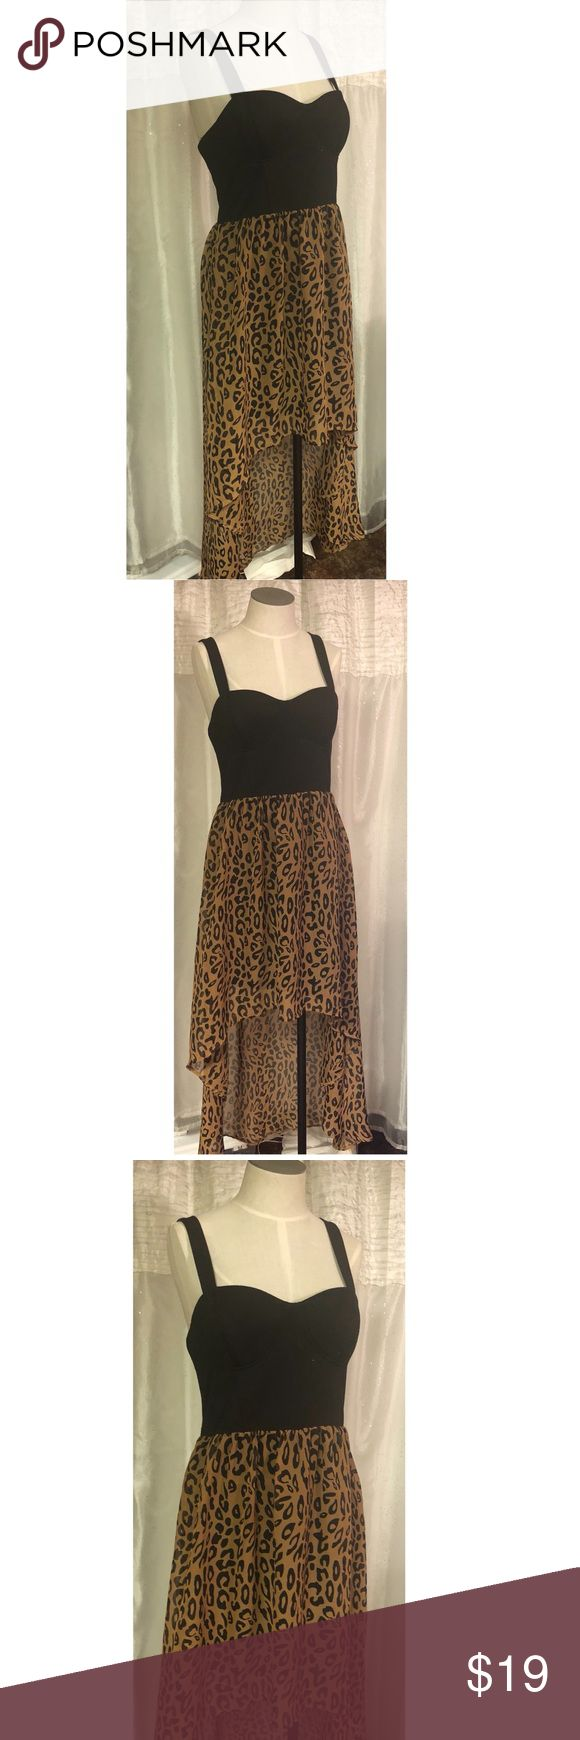 Black and Leopard hi low maxi dress Cute and flattering flowy hi low maxi dress Forever 21 Dresses High Low